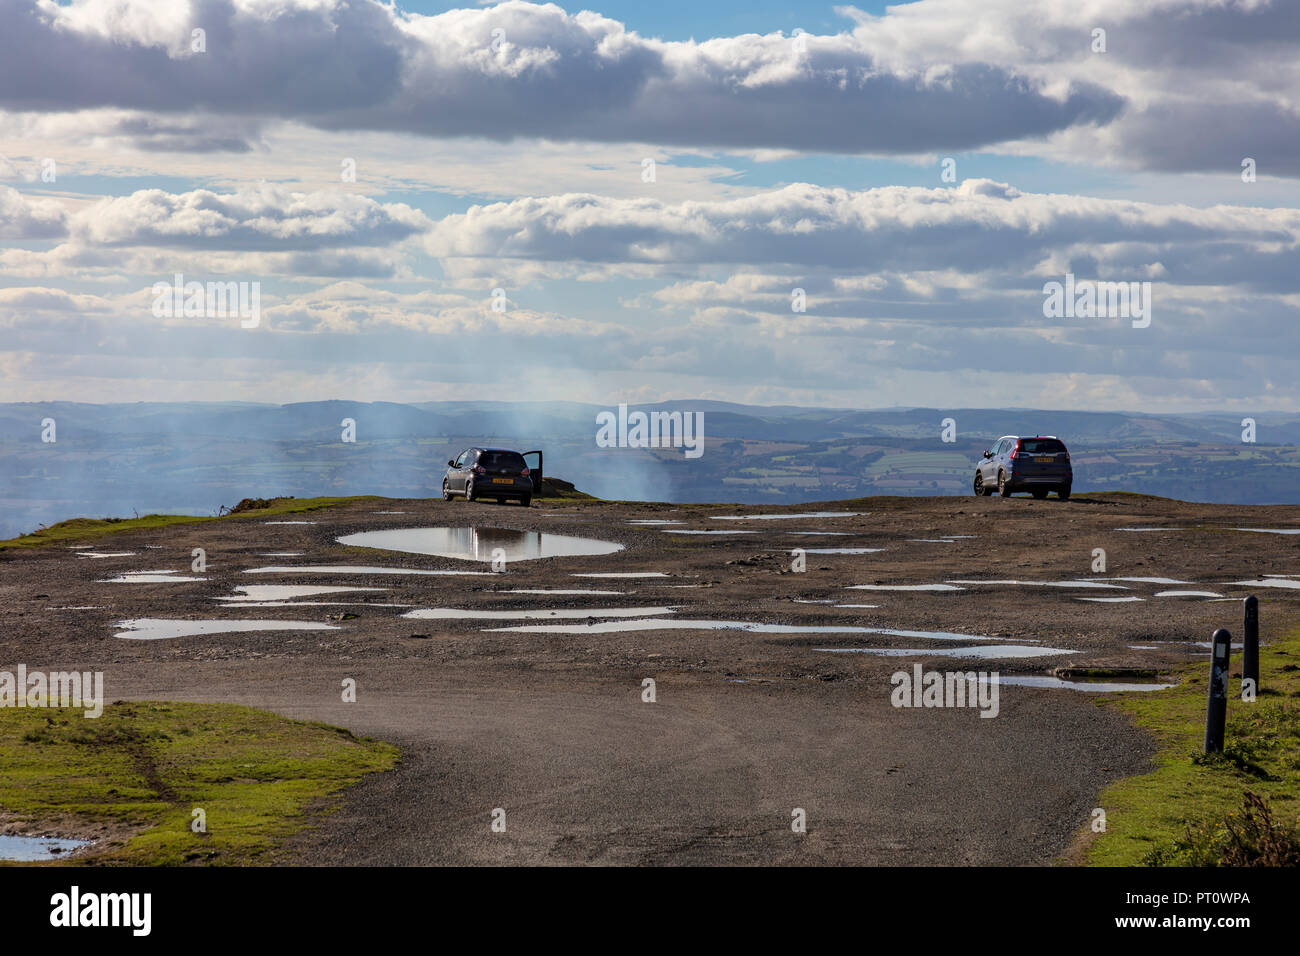 Cars parked on the old quarry workings at Titterstone Clee Hill, taking advantage of the long views towards ludlow, Shropshire, UK - Stock Image